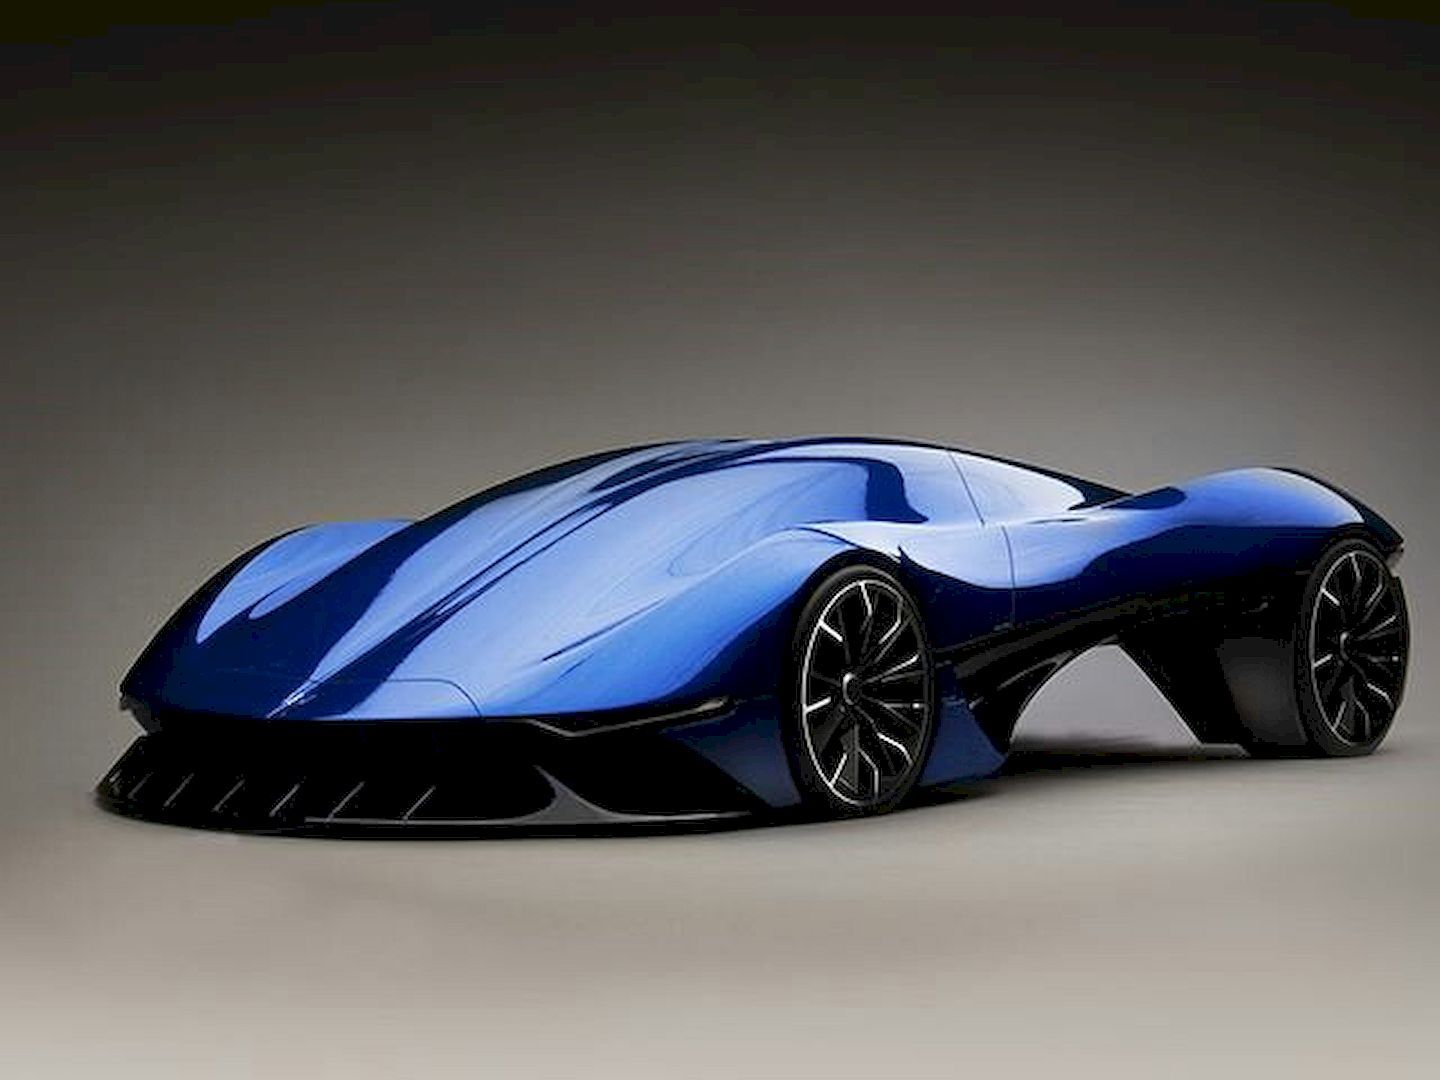 Cool Futuristic Car Ideas